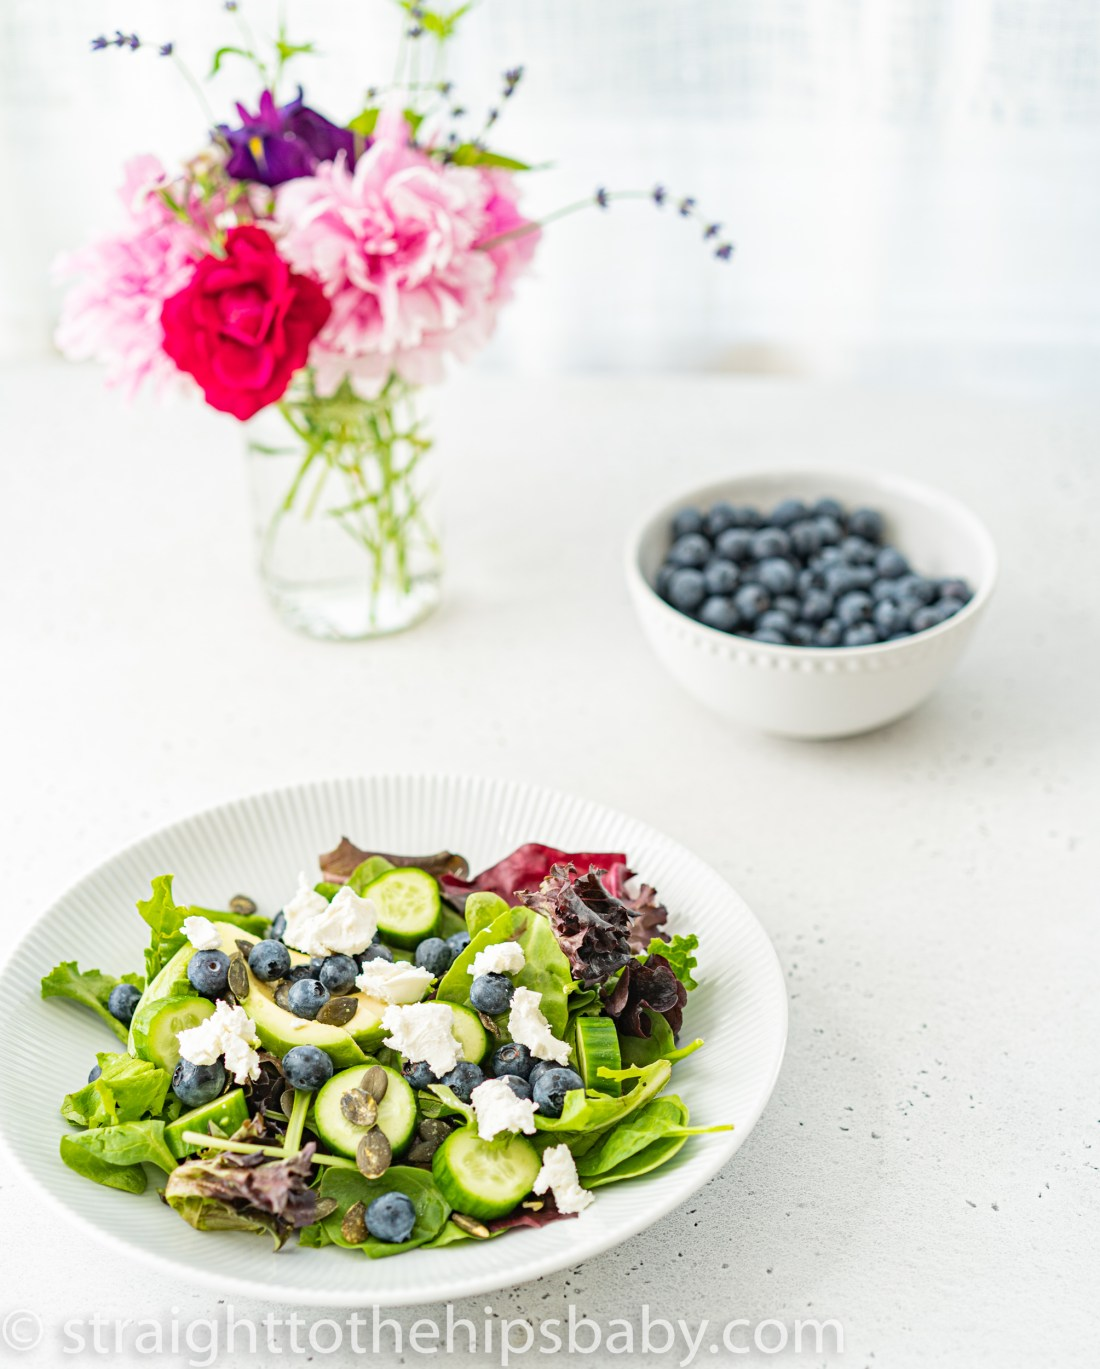 an undressed plate of blueberry goat cheese salad with a bouquet of pink flowers and bowl of blueberries blurred in the background